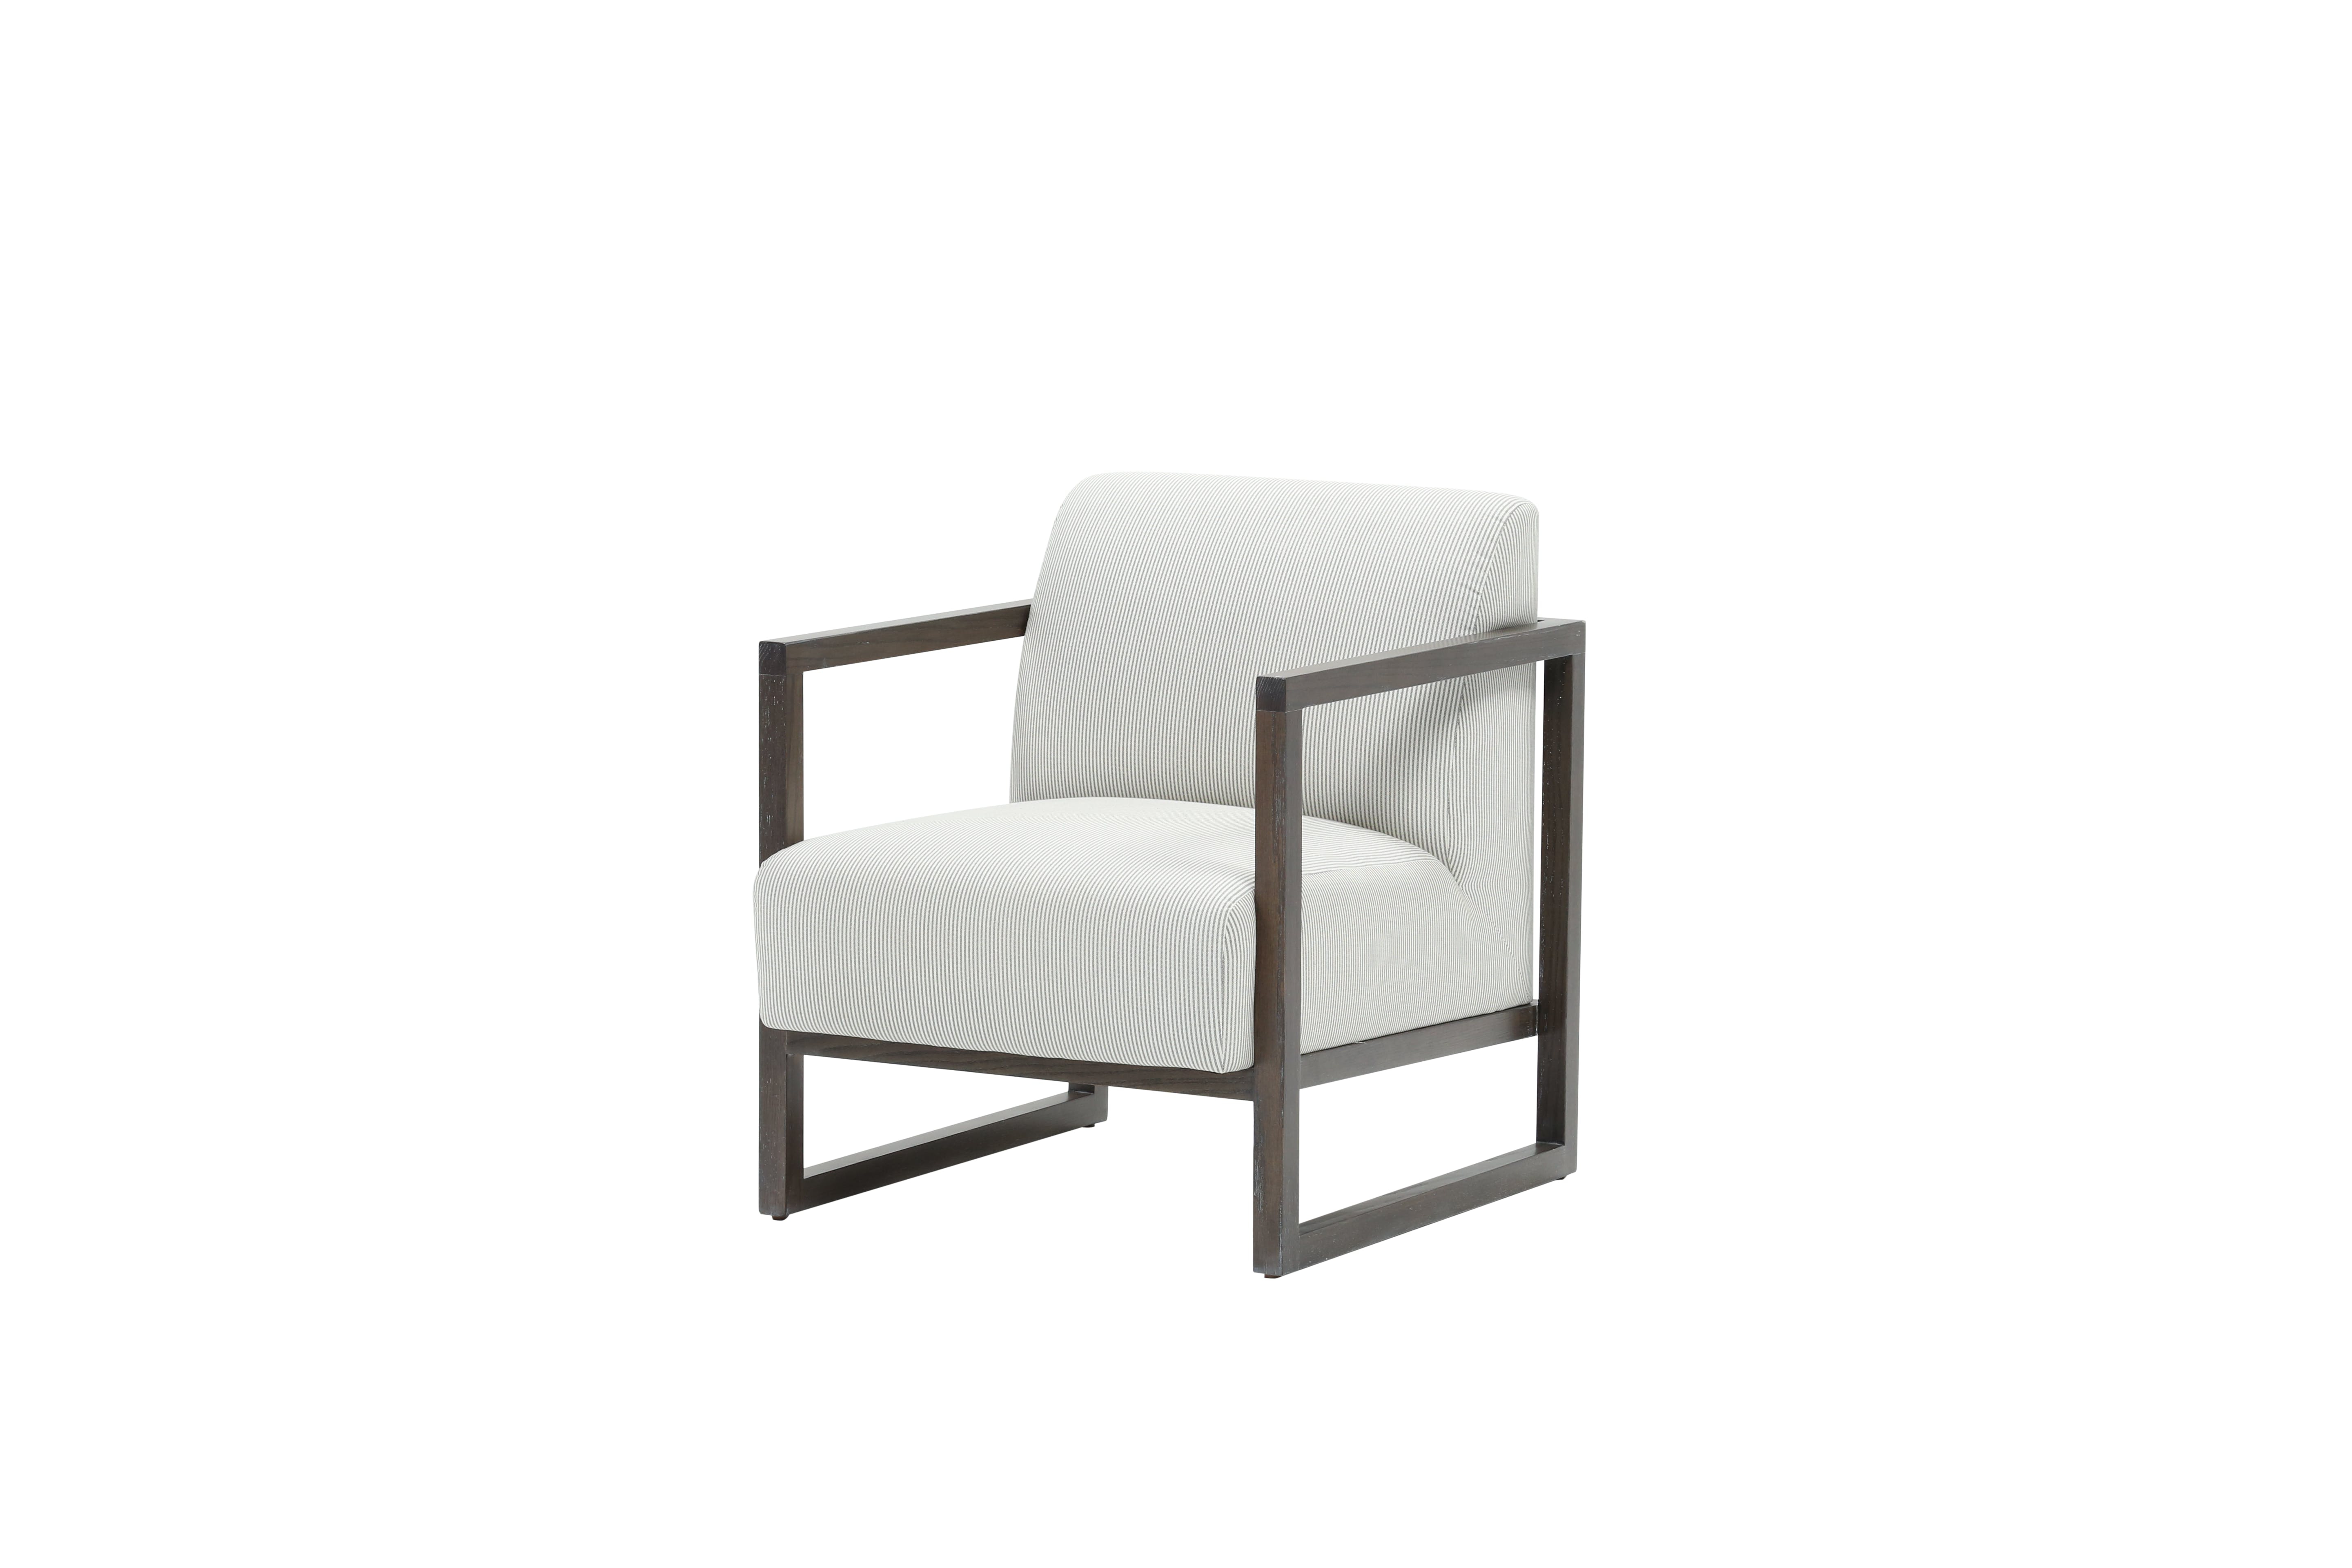 Matteo Arm Sofa Chairs By Nate Berkus And Jeremiah Brent Pertaining To Most Current Nate Berkus Just Launched A Home Collection With Hubby Jeremiah (View 18 of 20)